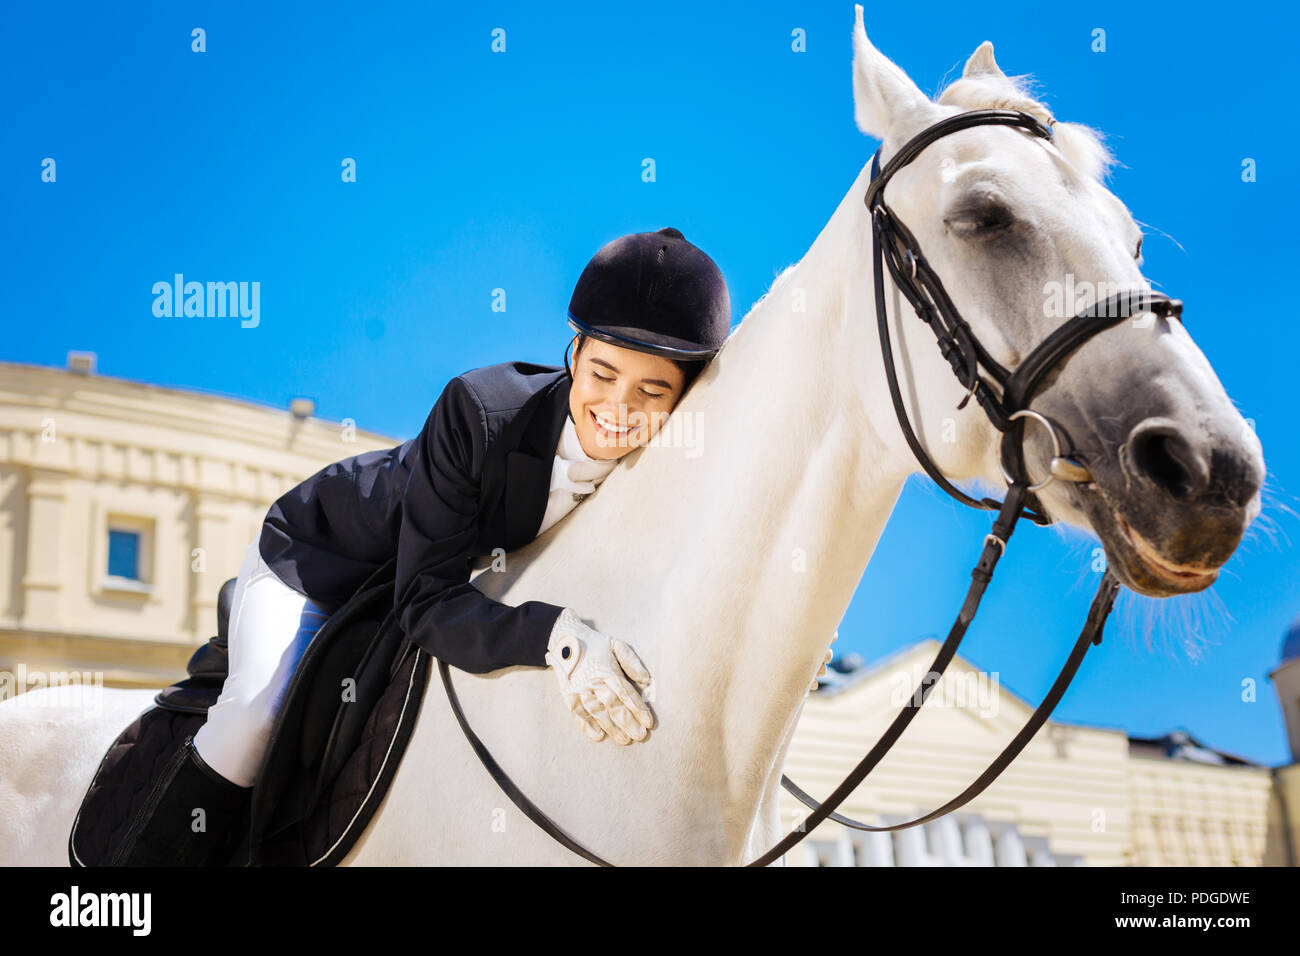 Smiling female rider loving her white horse greatly - Stock Image